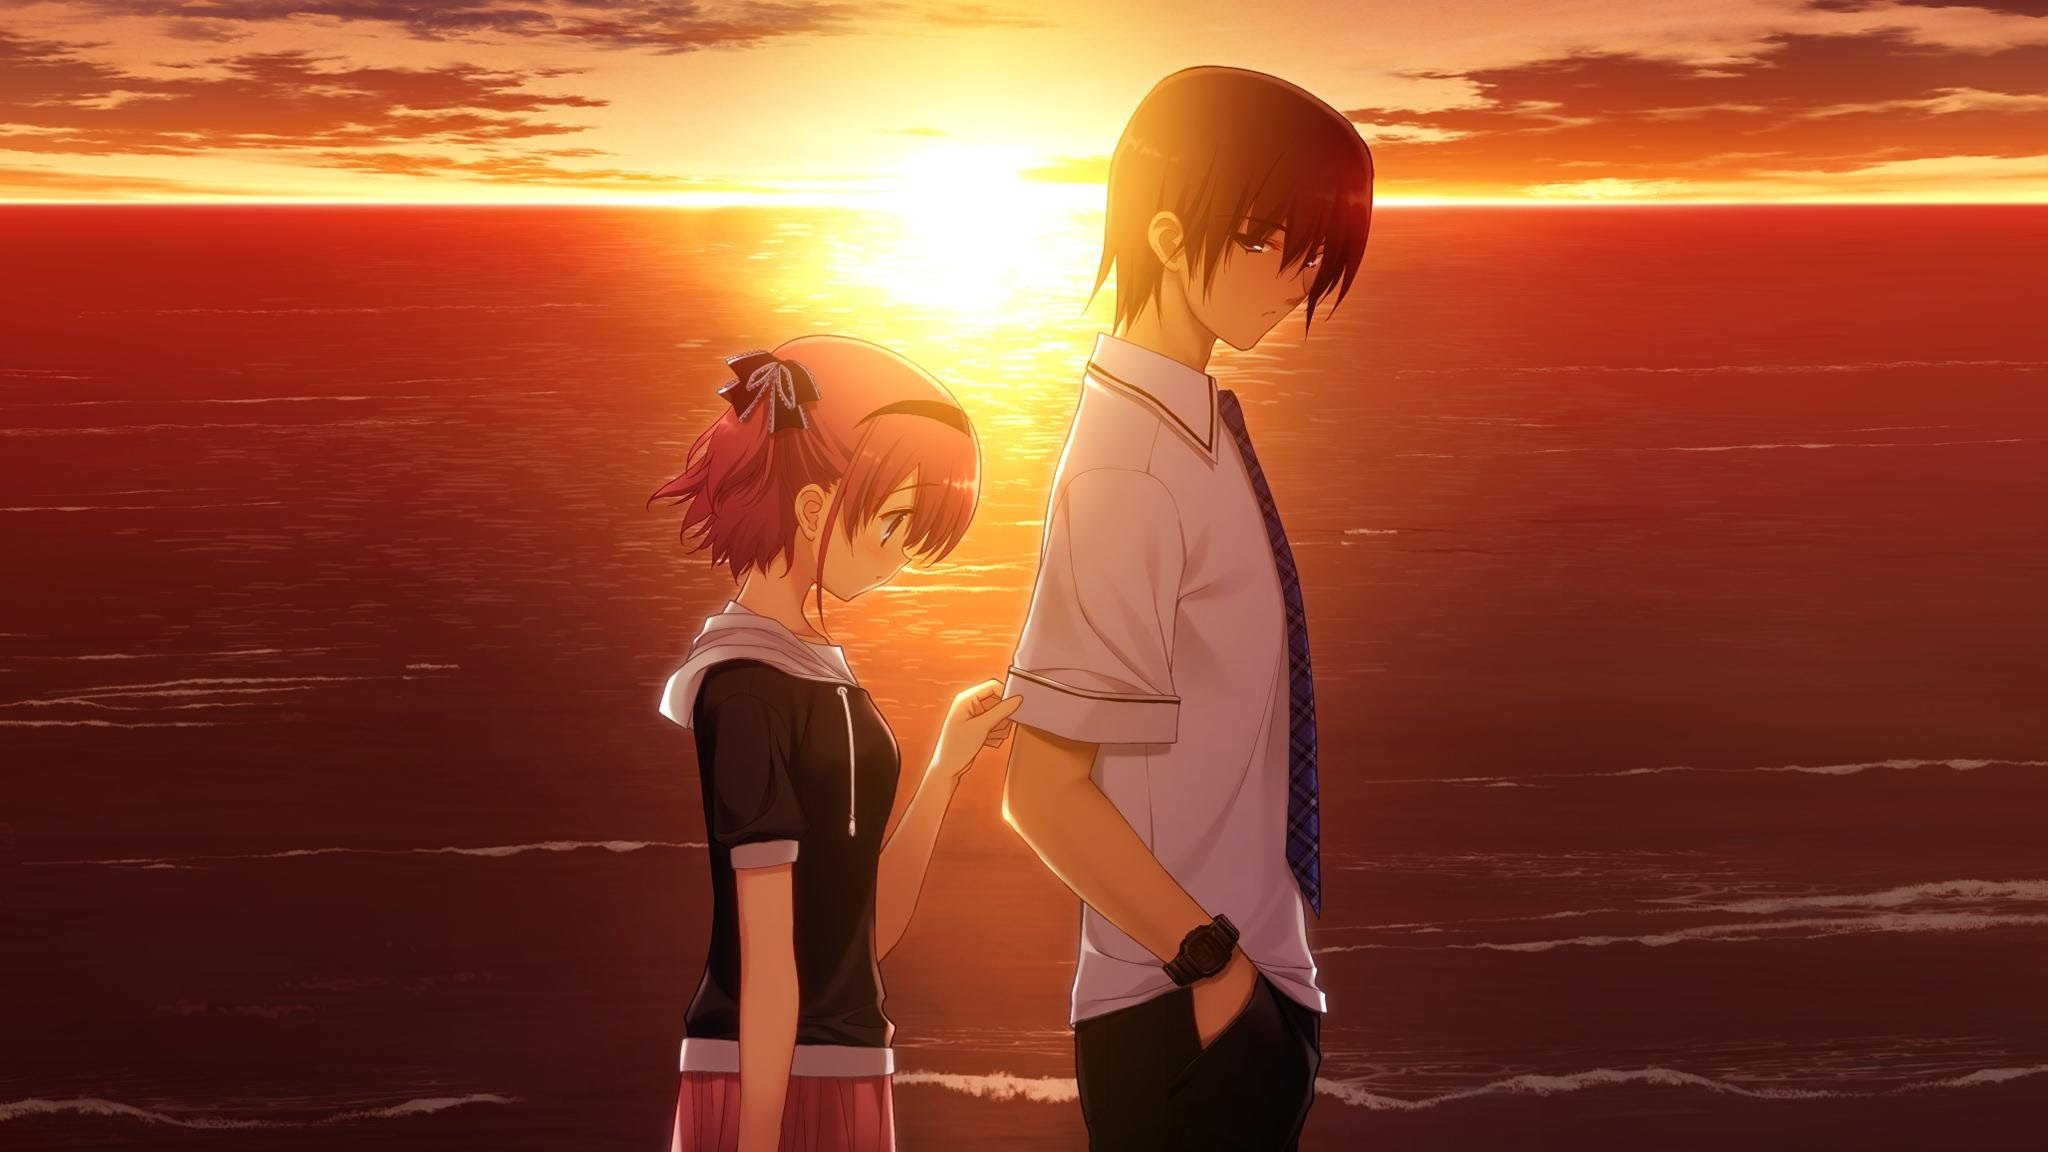 Anime Couple Wallpaper 74 Images